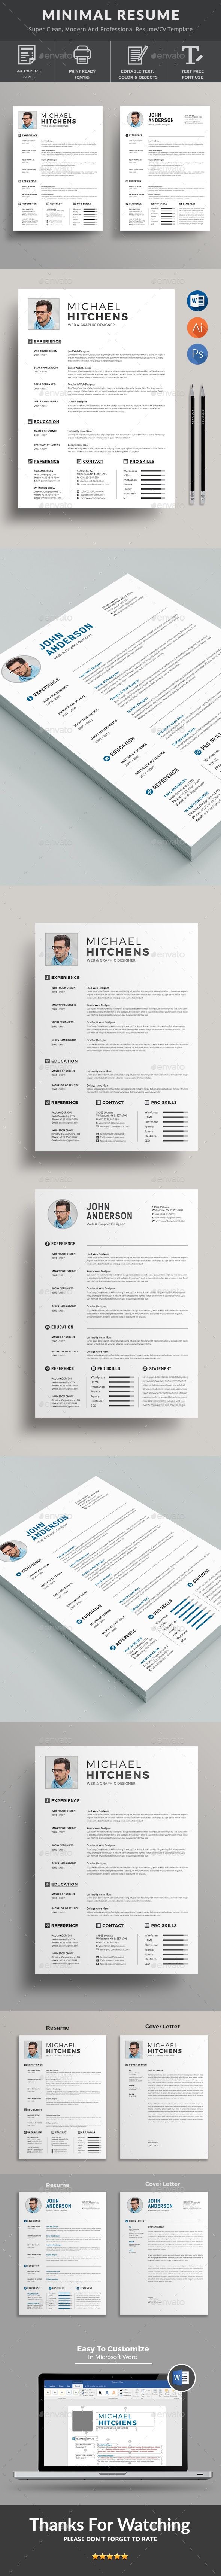 best ideas about resume templates resume resume resume templates is the super clean the flexible page designs are easy to use